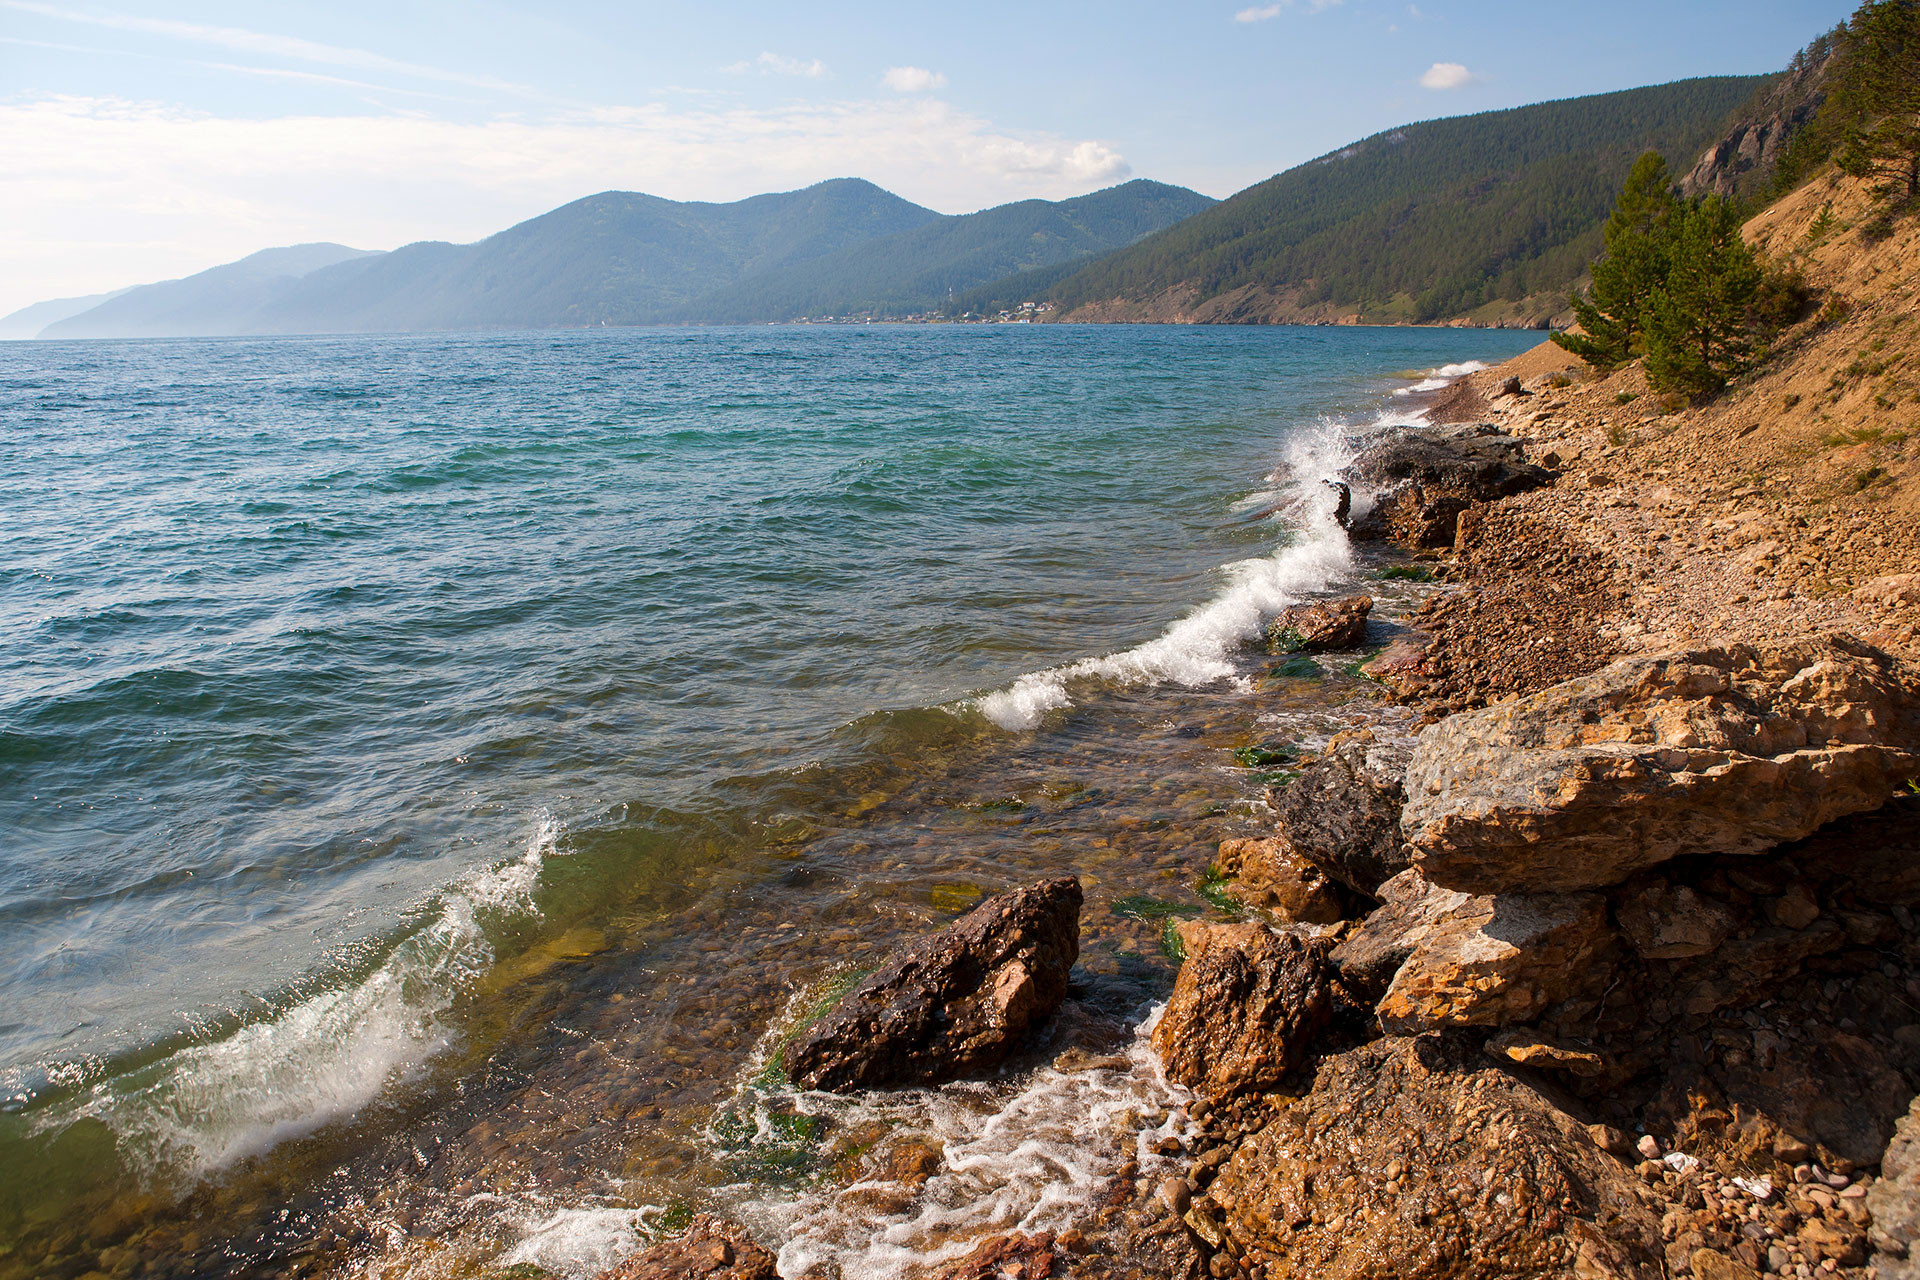 Baikal is the world's largest freshwater lake by volume, so it's definitely worth seeing before you die